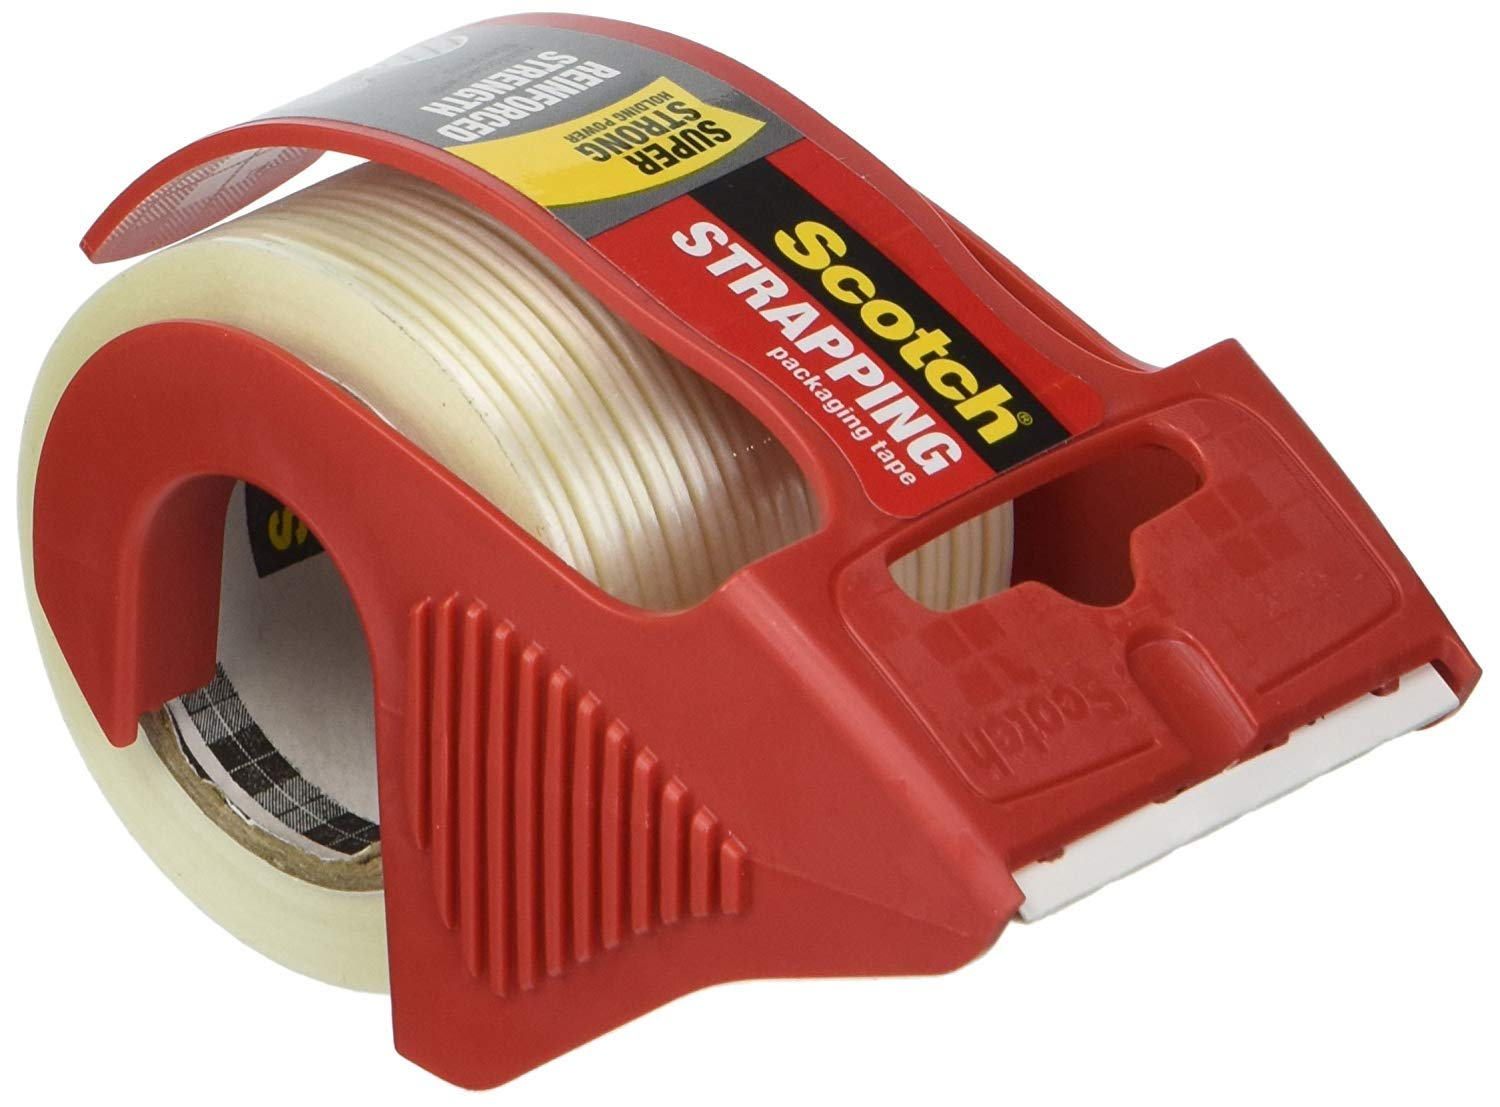 Scotch MMM50 Reinforced Strength Shipping and Strapping Tape in Dispenser, Red, 18 Pack by Scotch Brand